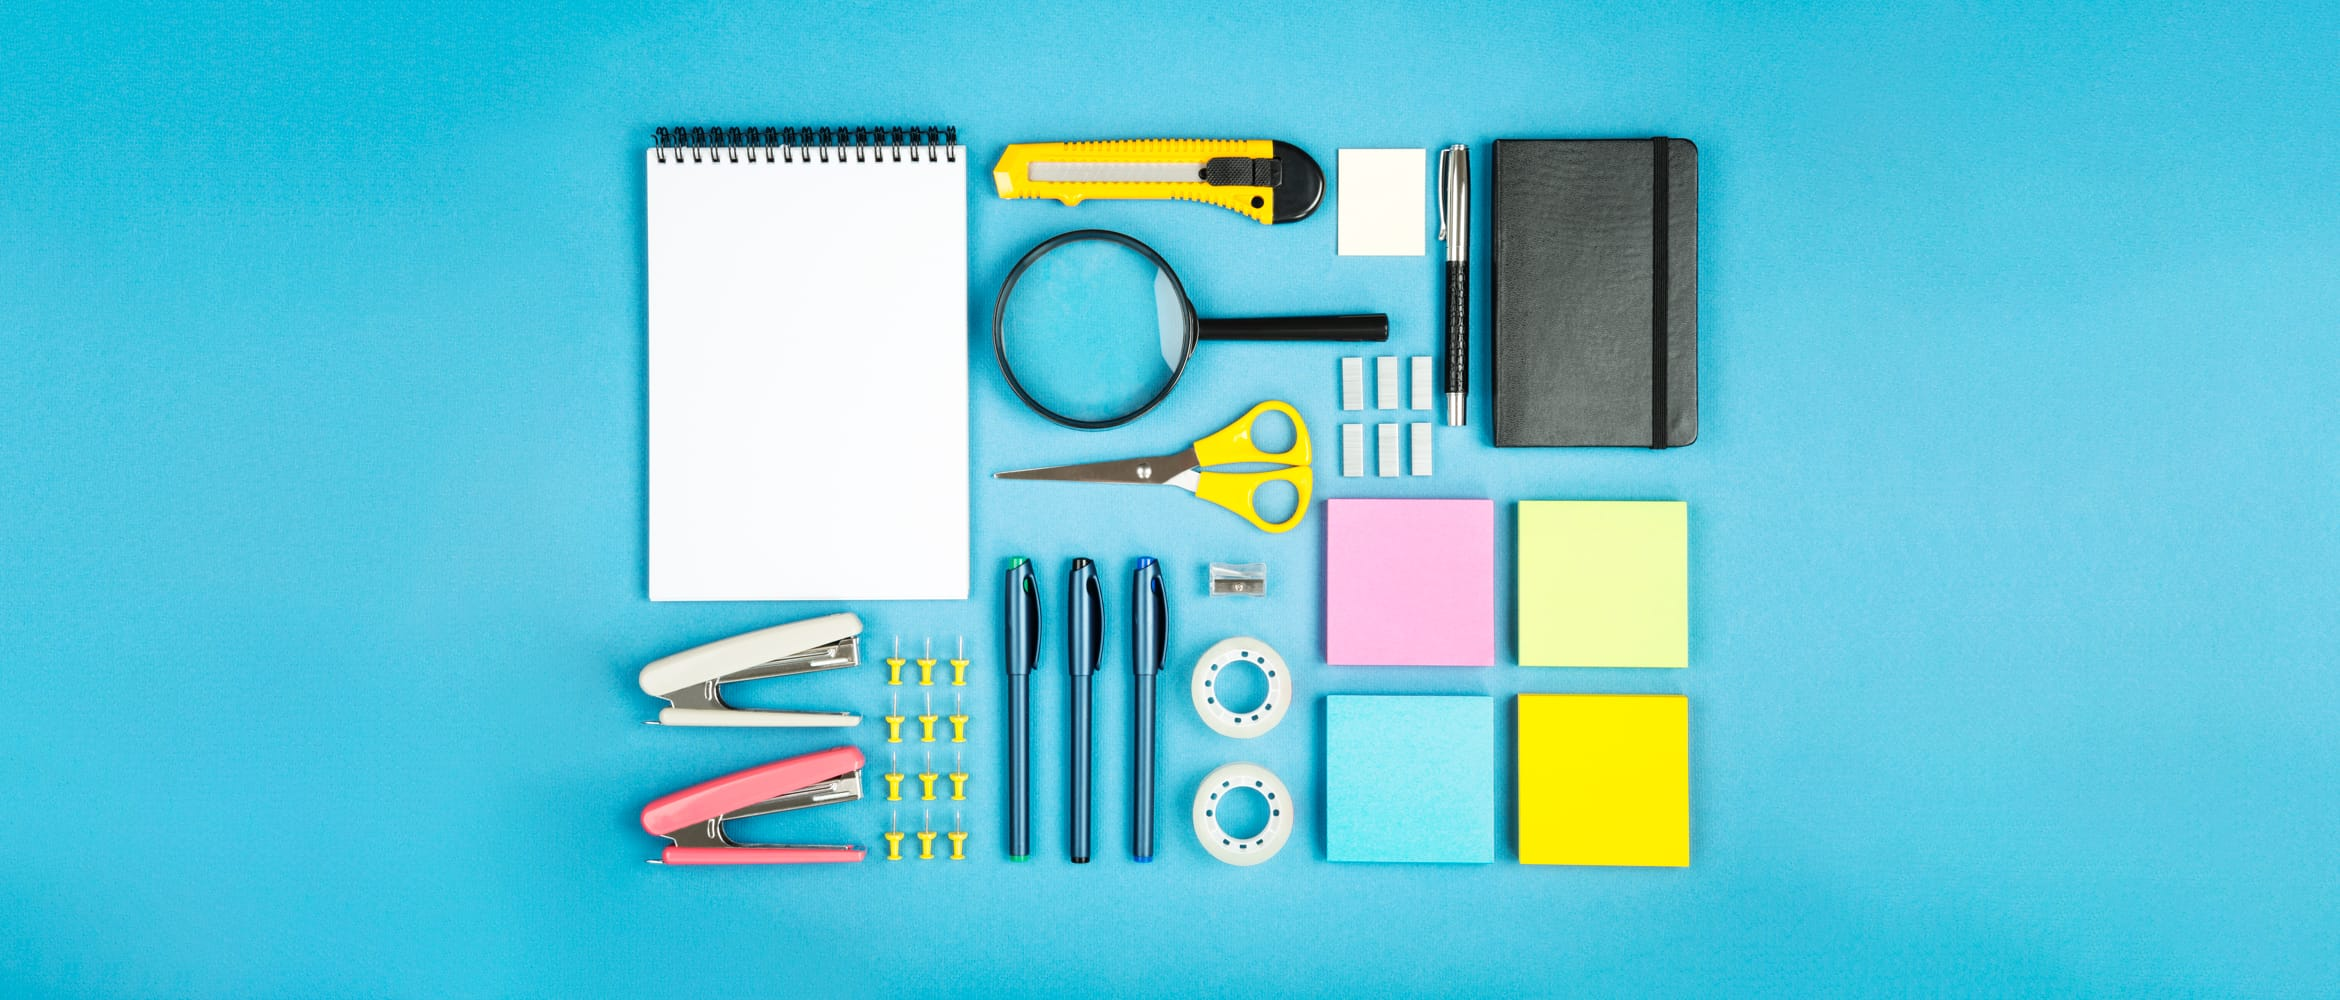 Office stationery neatly organised to improve productivity